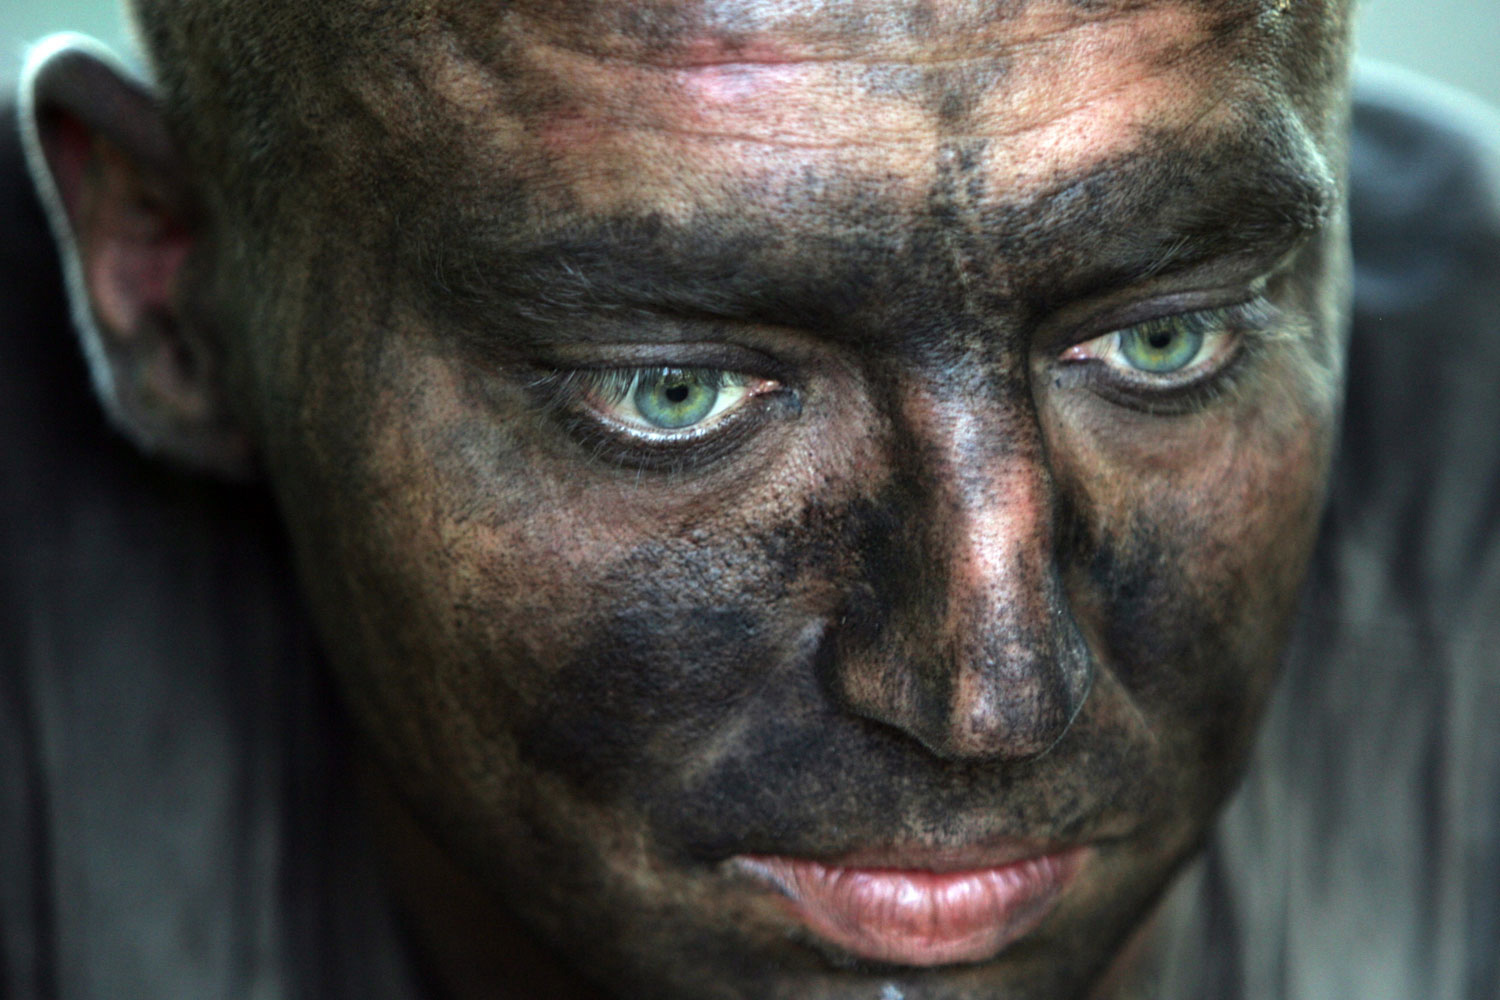 July 29, 2011. A rescuer rests during a break at Sukhodolskaya-Vostochnaya coal mine in the Lugansk region of eastern Ukraine. Eighteen miners died and another 20 were missing after an explosion in the coal mine.